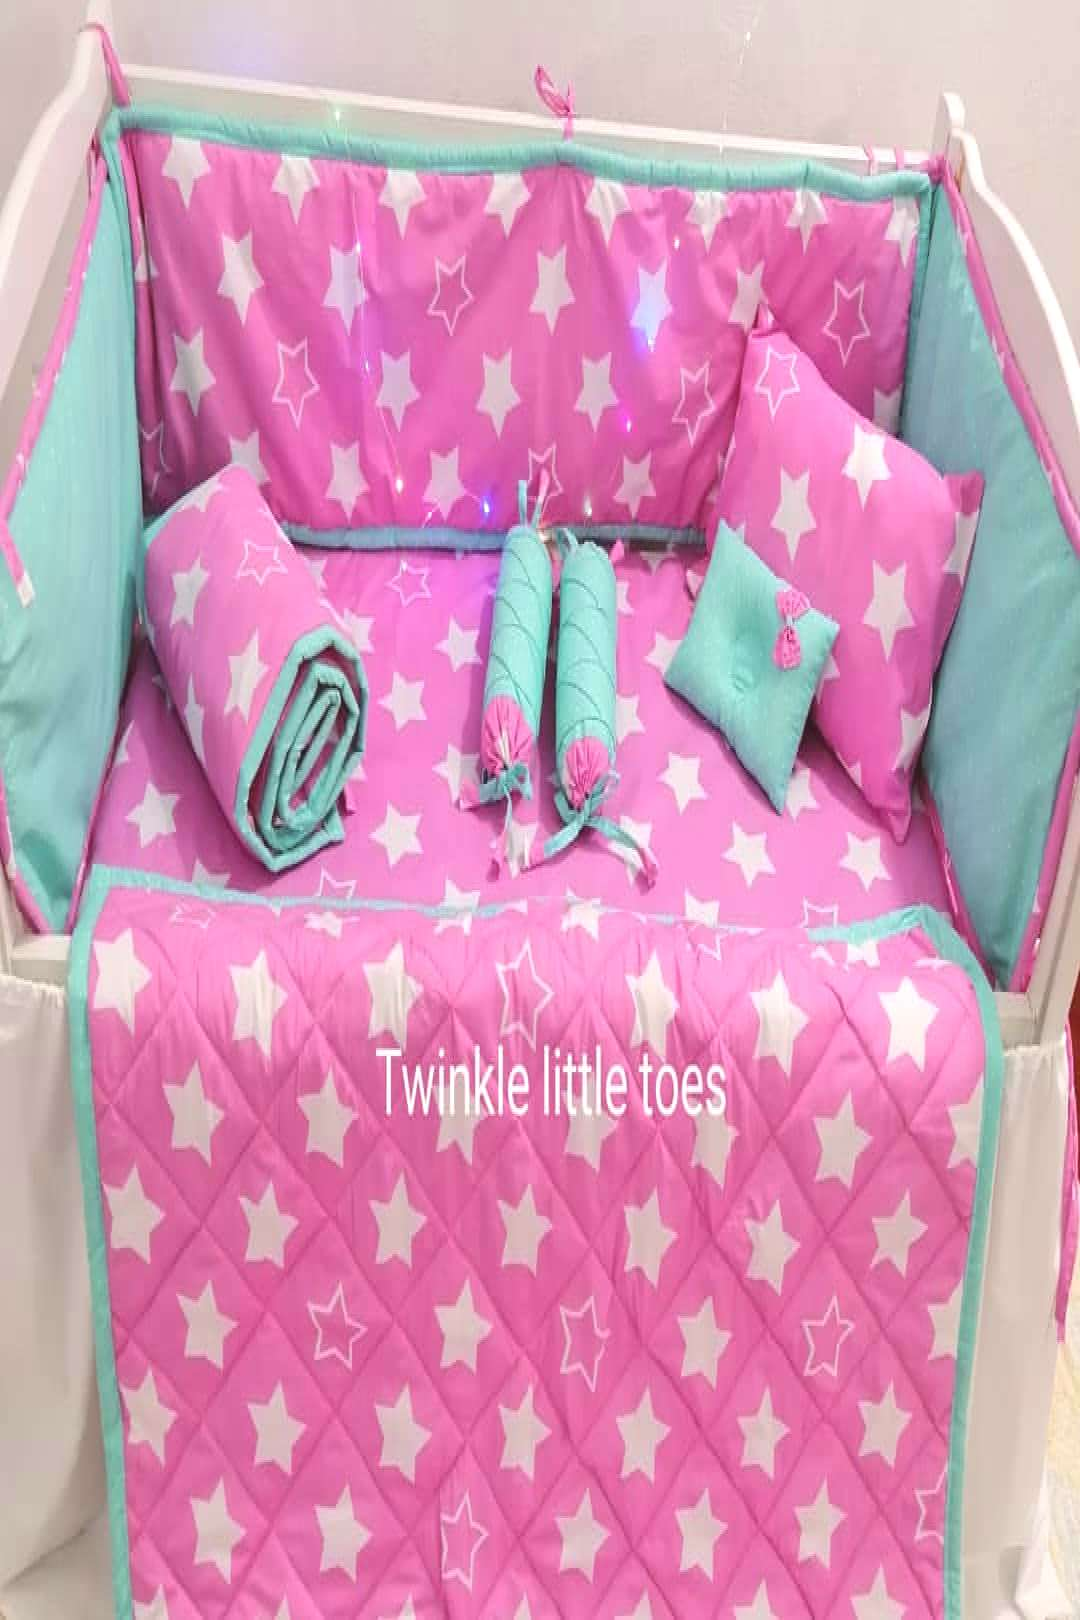 Pink girl theme set of 10 pieces including 4 bumpers 2 neckrolls